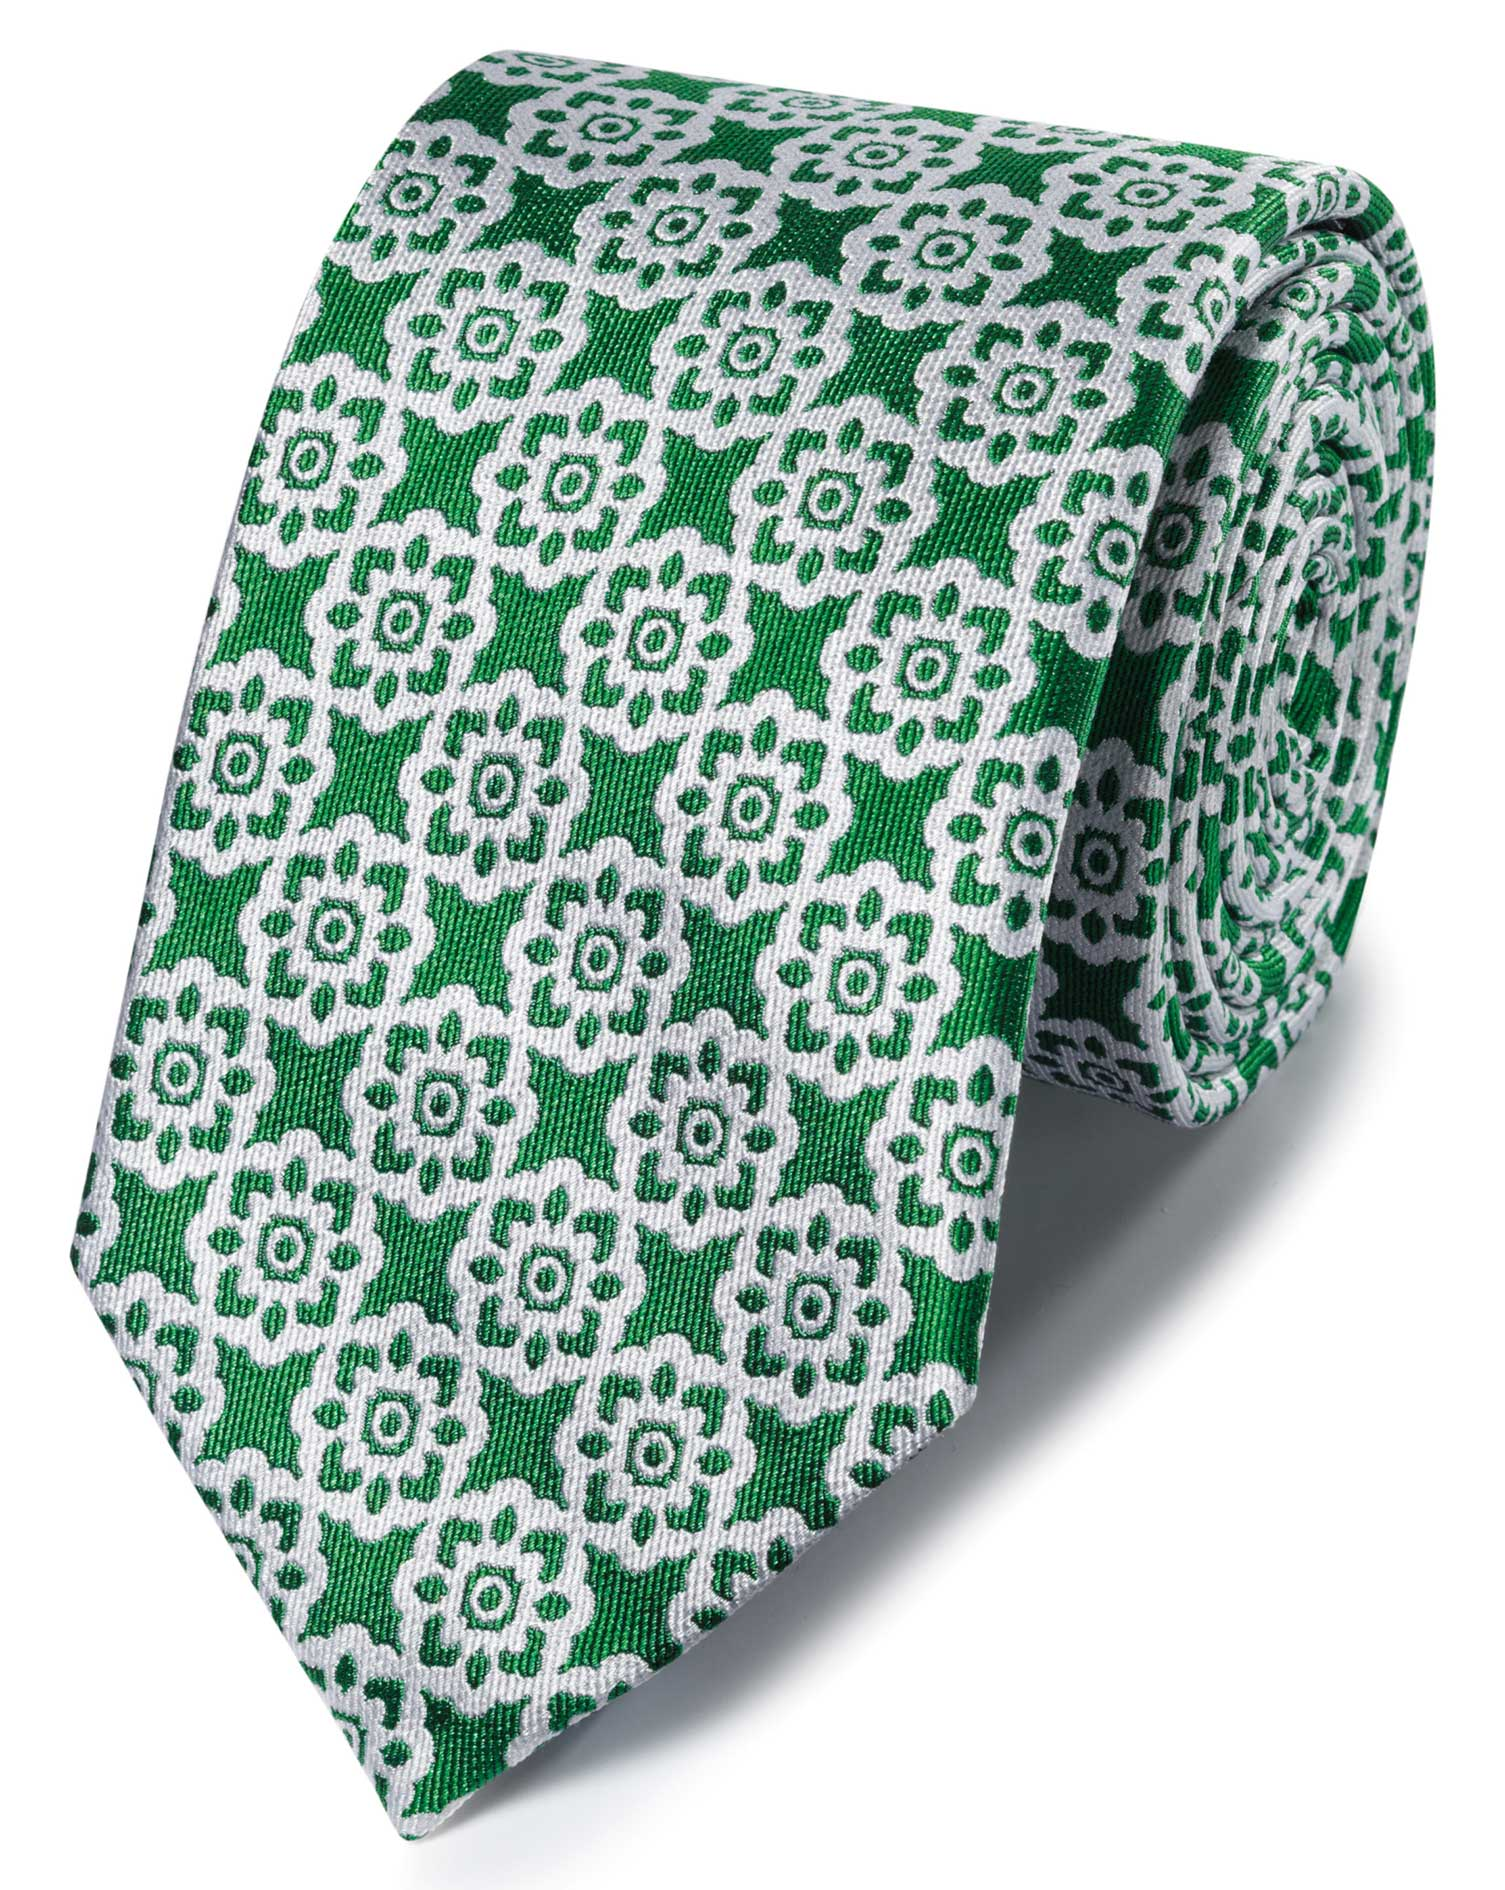 Green and White Floral Classic Silk Tie Size OSFA by Charles Tyrwhitt